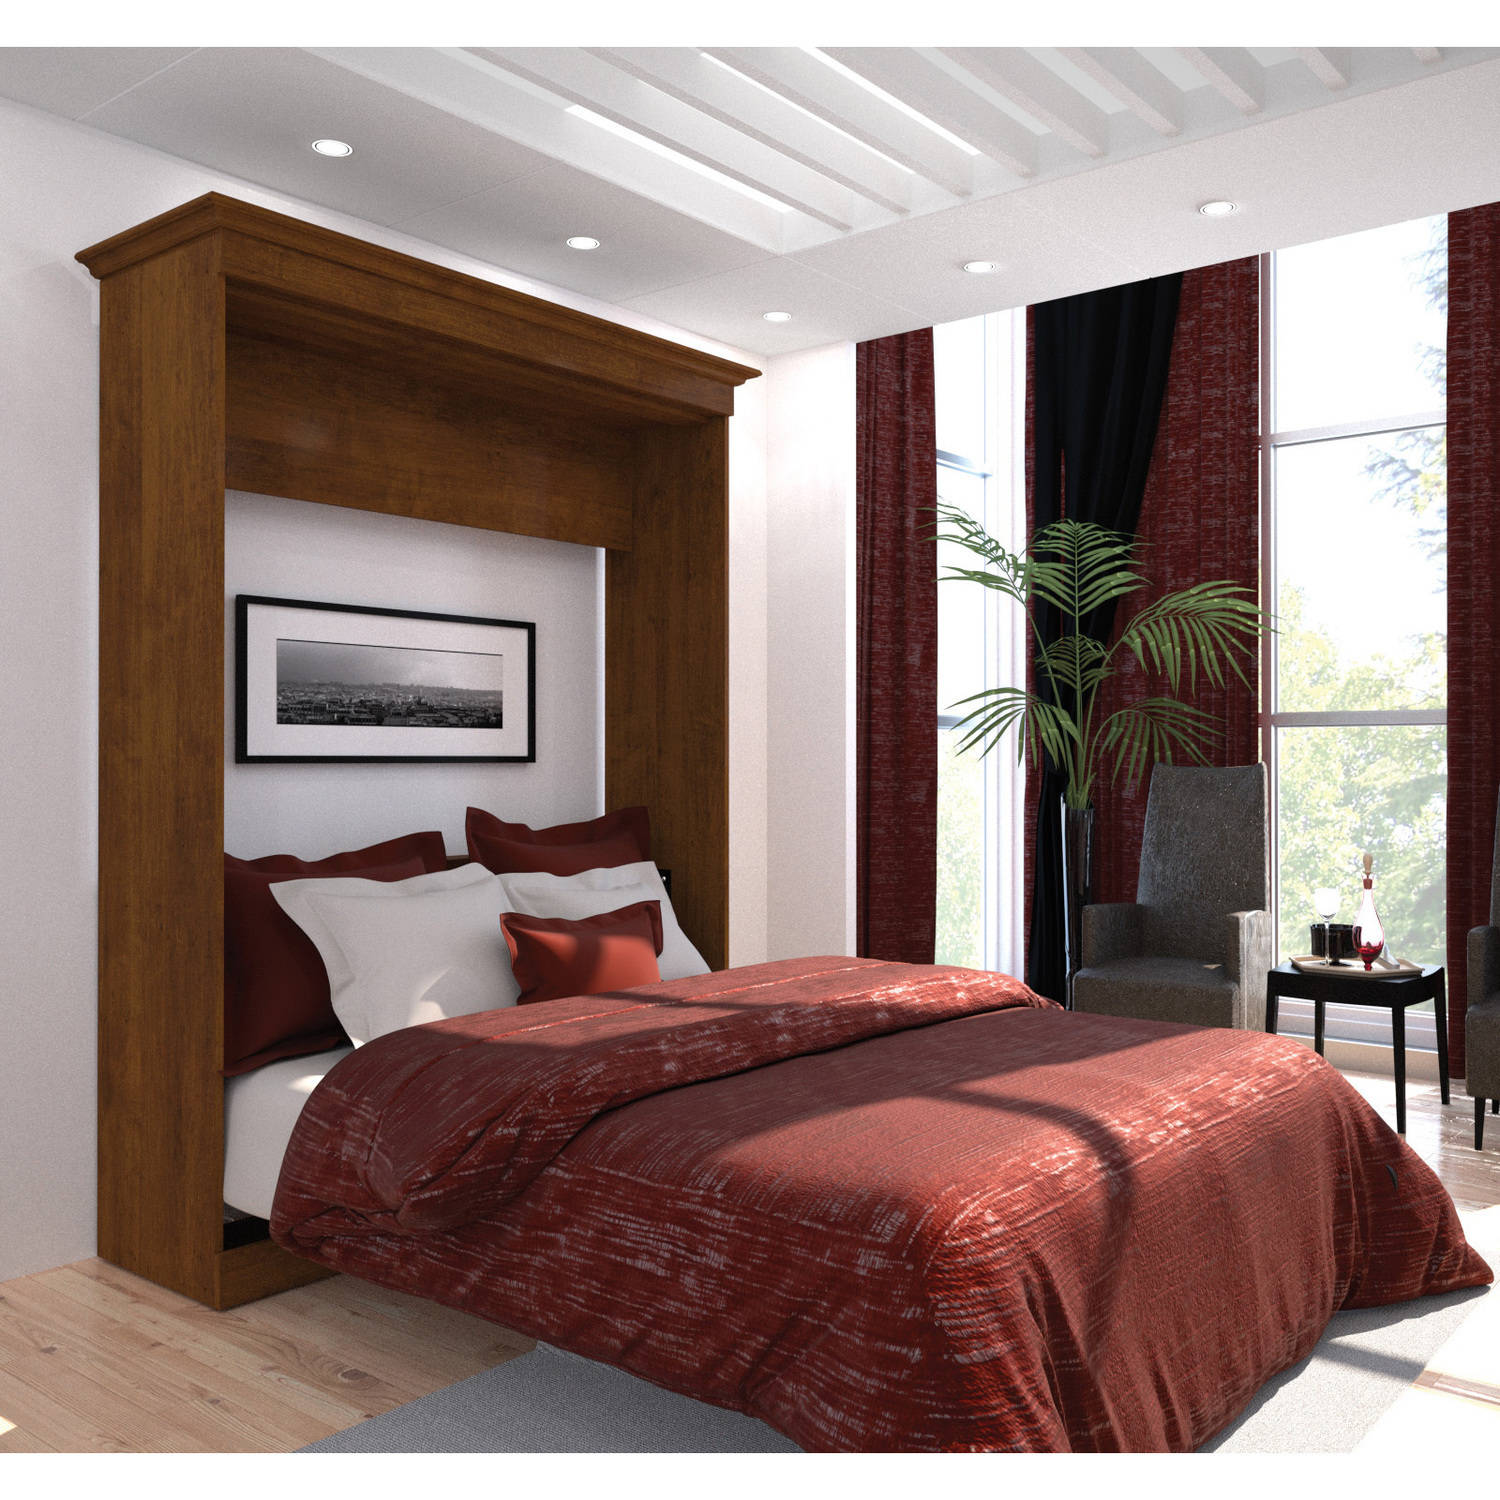 Bestar Versatile by Bestar 70'' Queen Wall Bed, Tuscany Brown